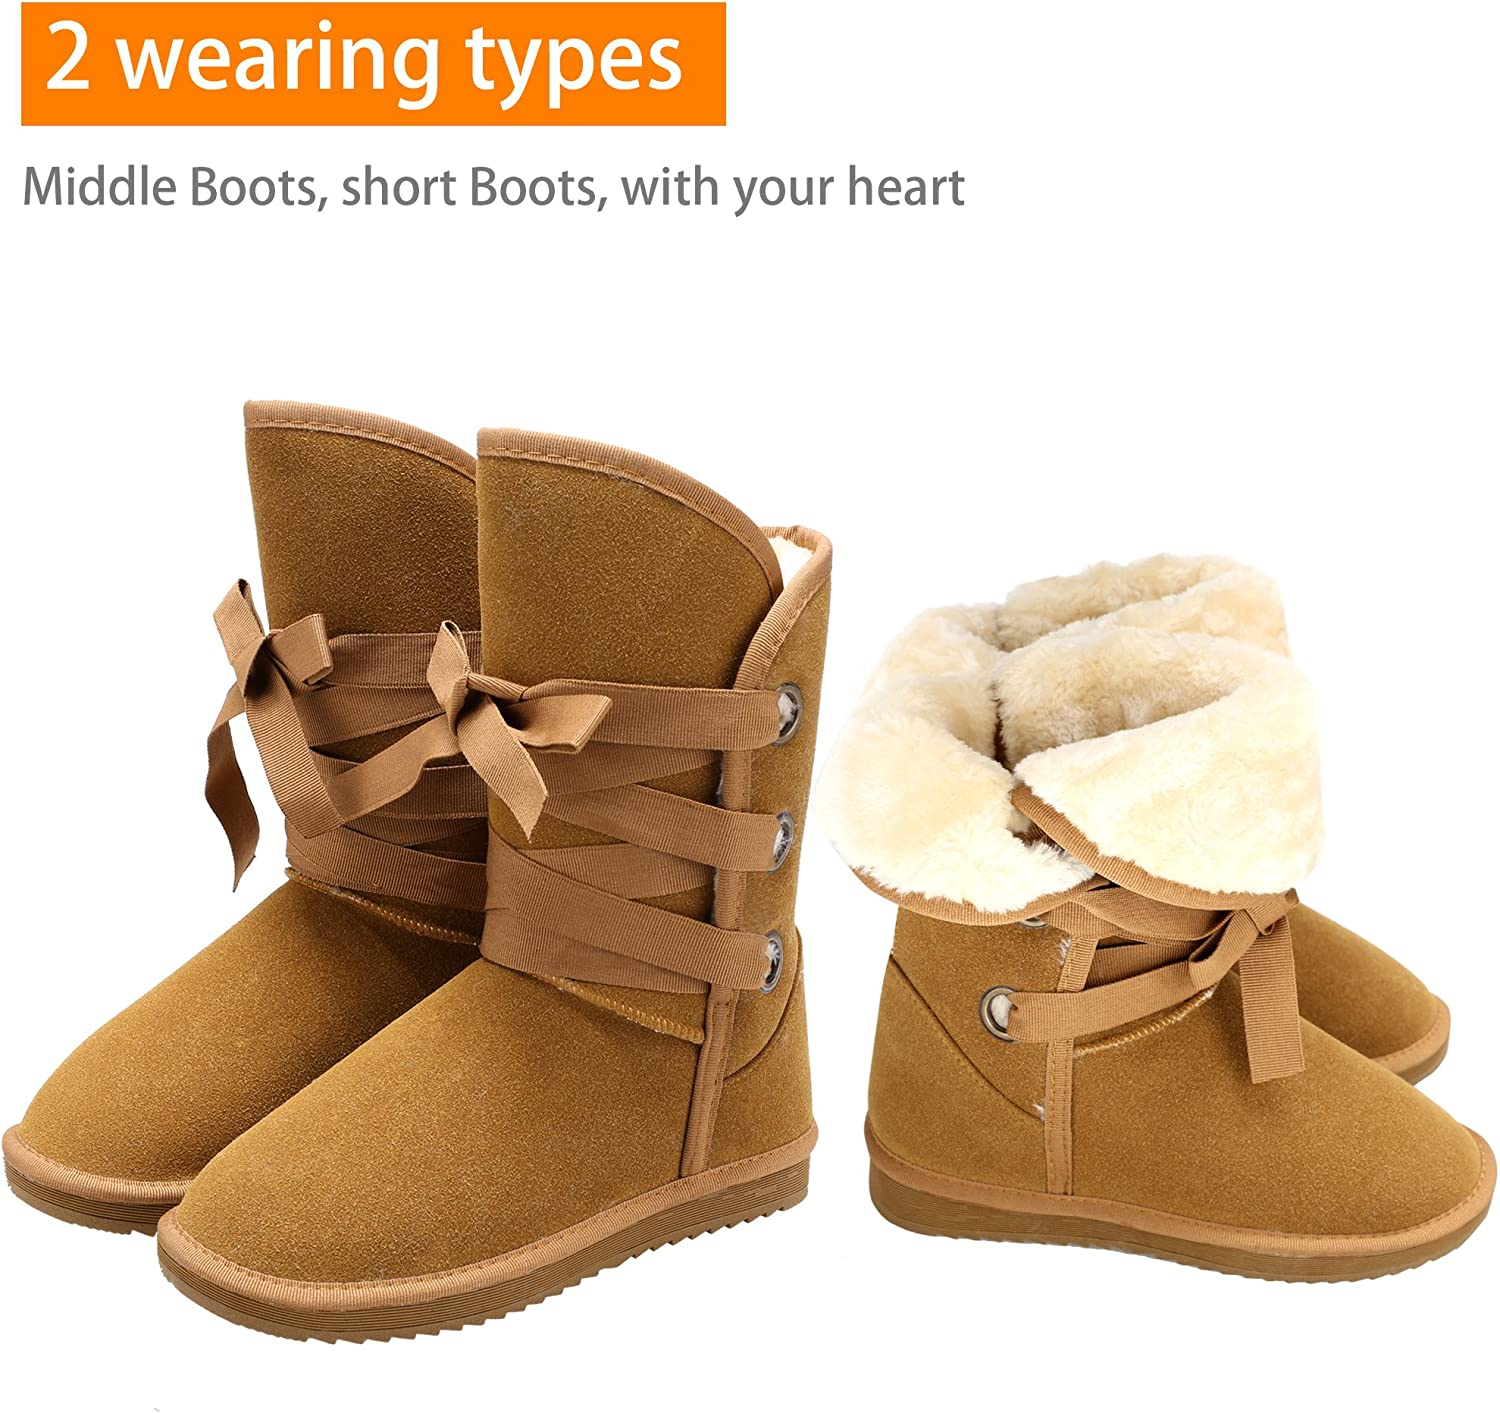 Zeagoo Womens Flat Warm Fur Lined Rubber Sole Winter Snow Ankle Boots Shoes